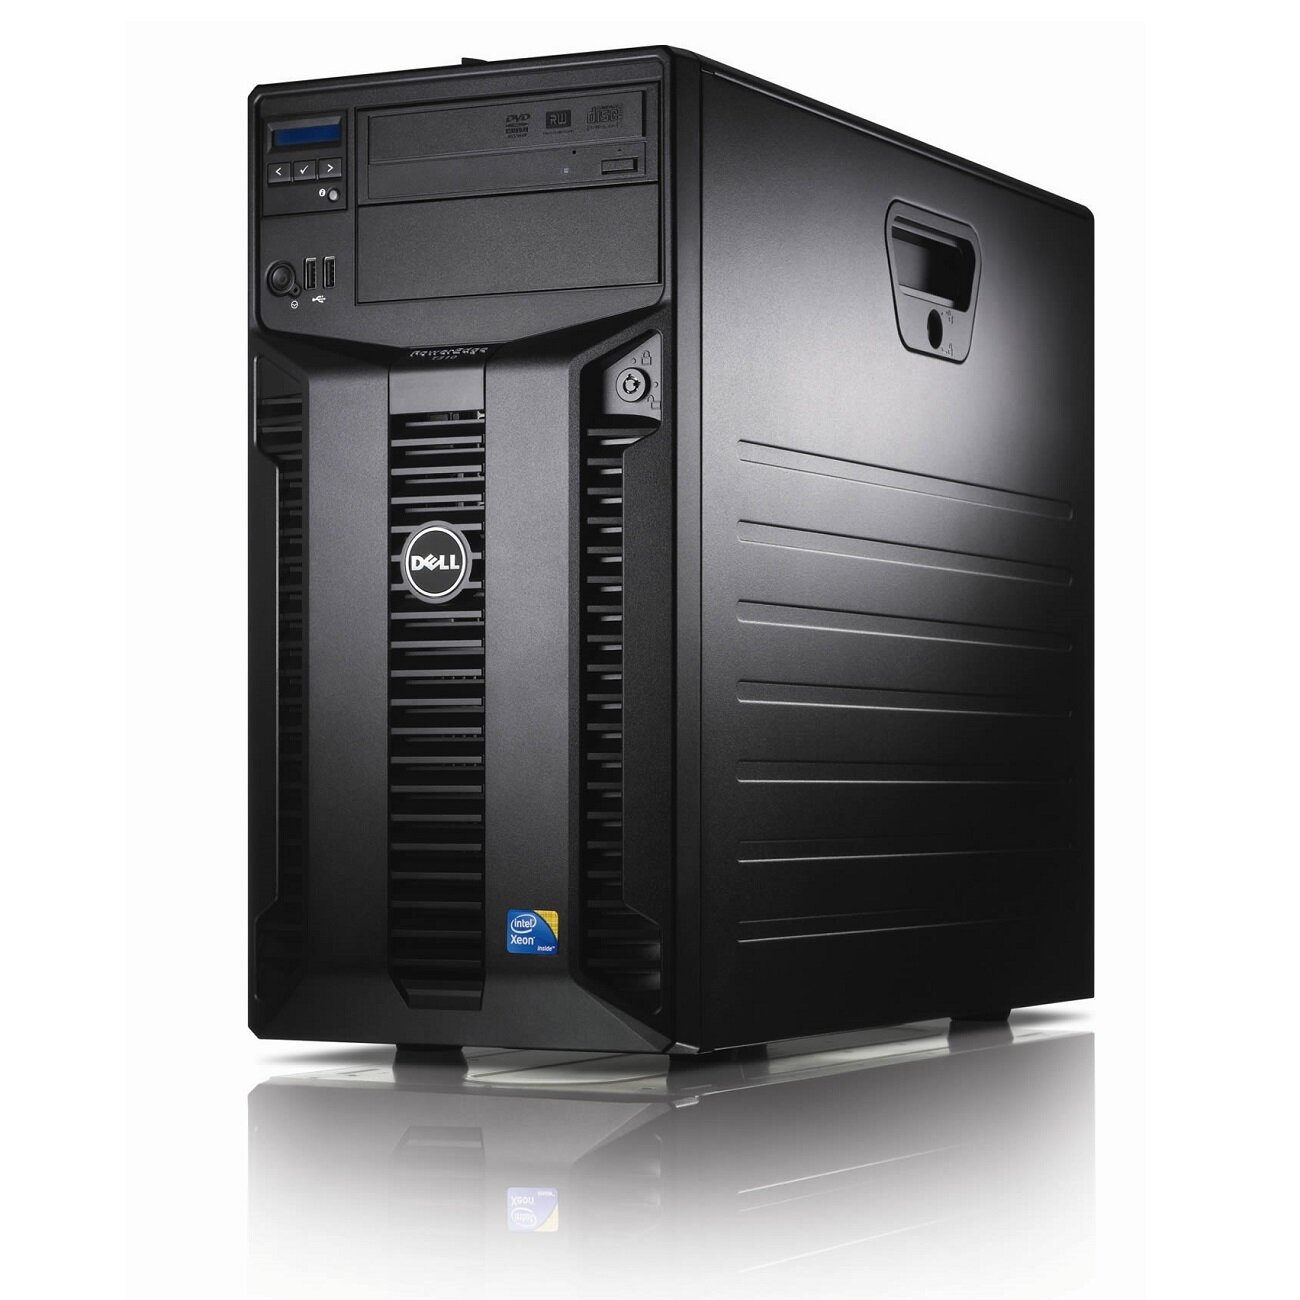 Máy chủ Dell PowerEdge T310-X3440 - Intel Xeon X3440 2.53 GHz, 4GB RAM, 500GB HDD